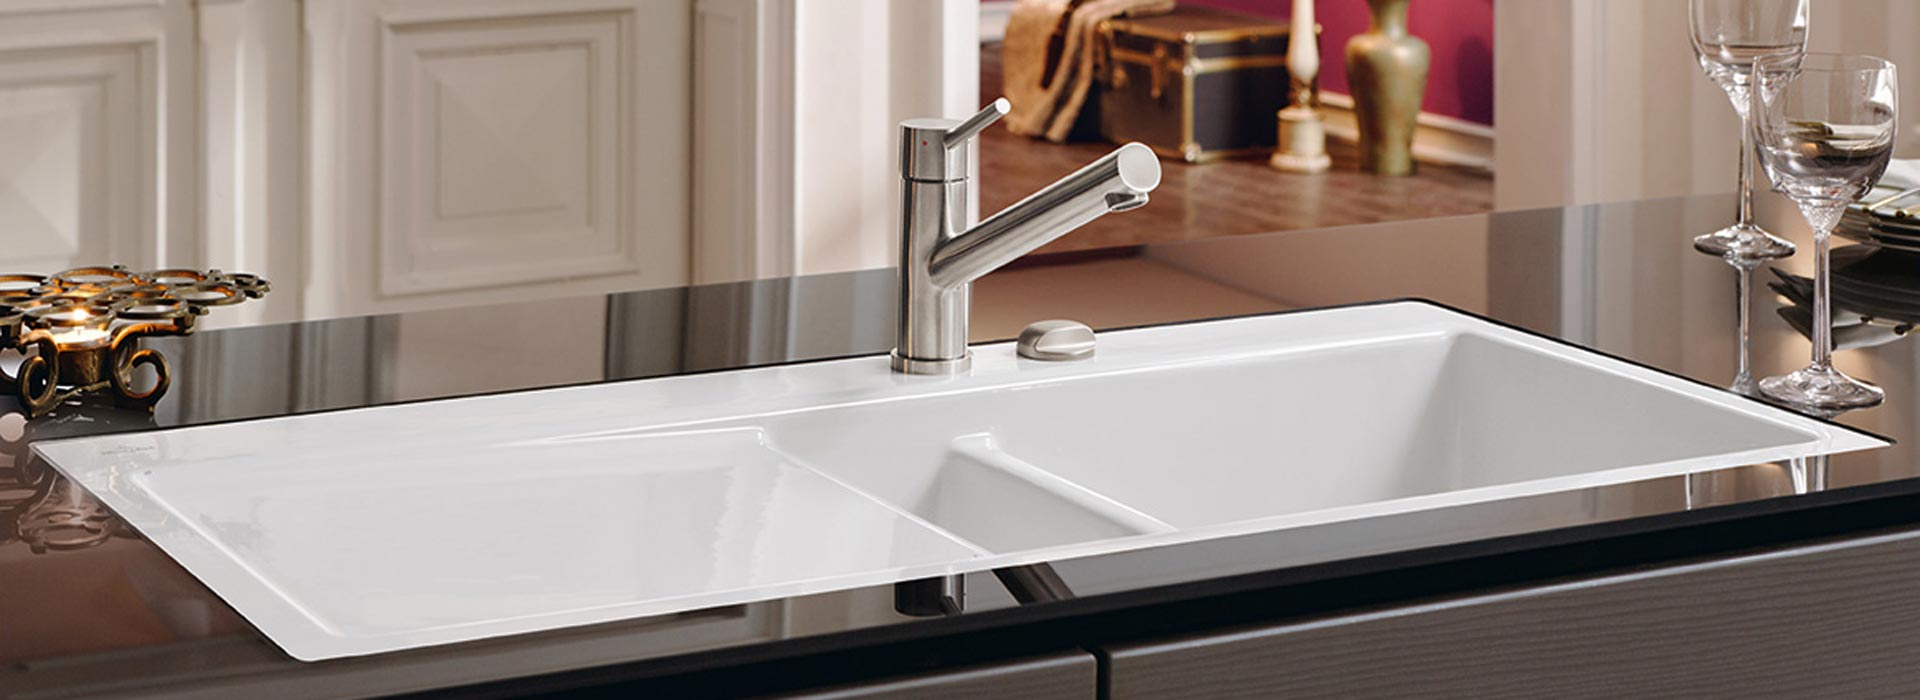 high quality ceramic sink from villeroy boch. Black Bedroom Furniture Sets. Home Design Ideas